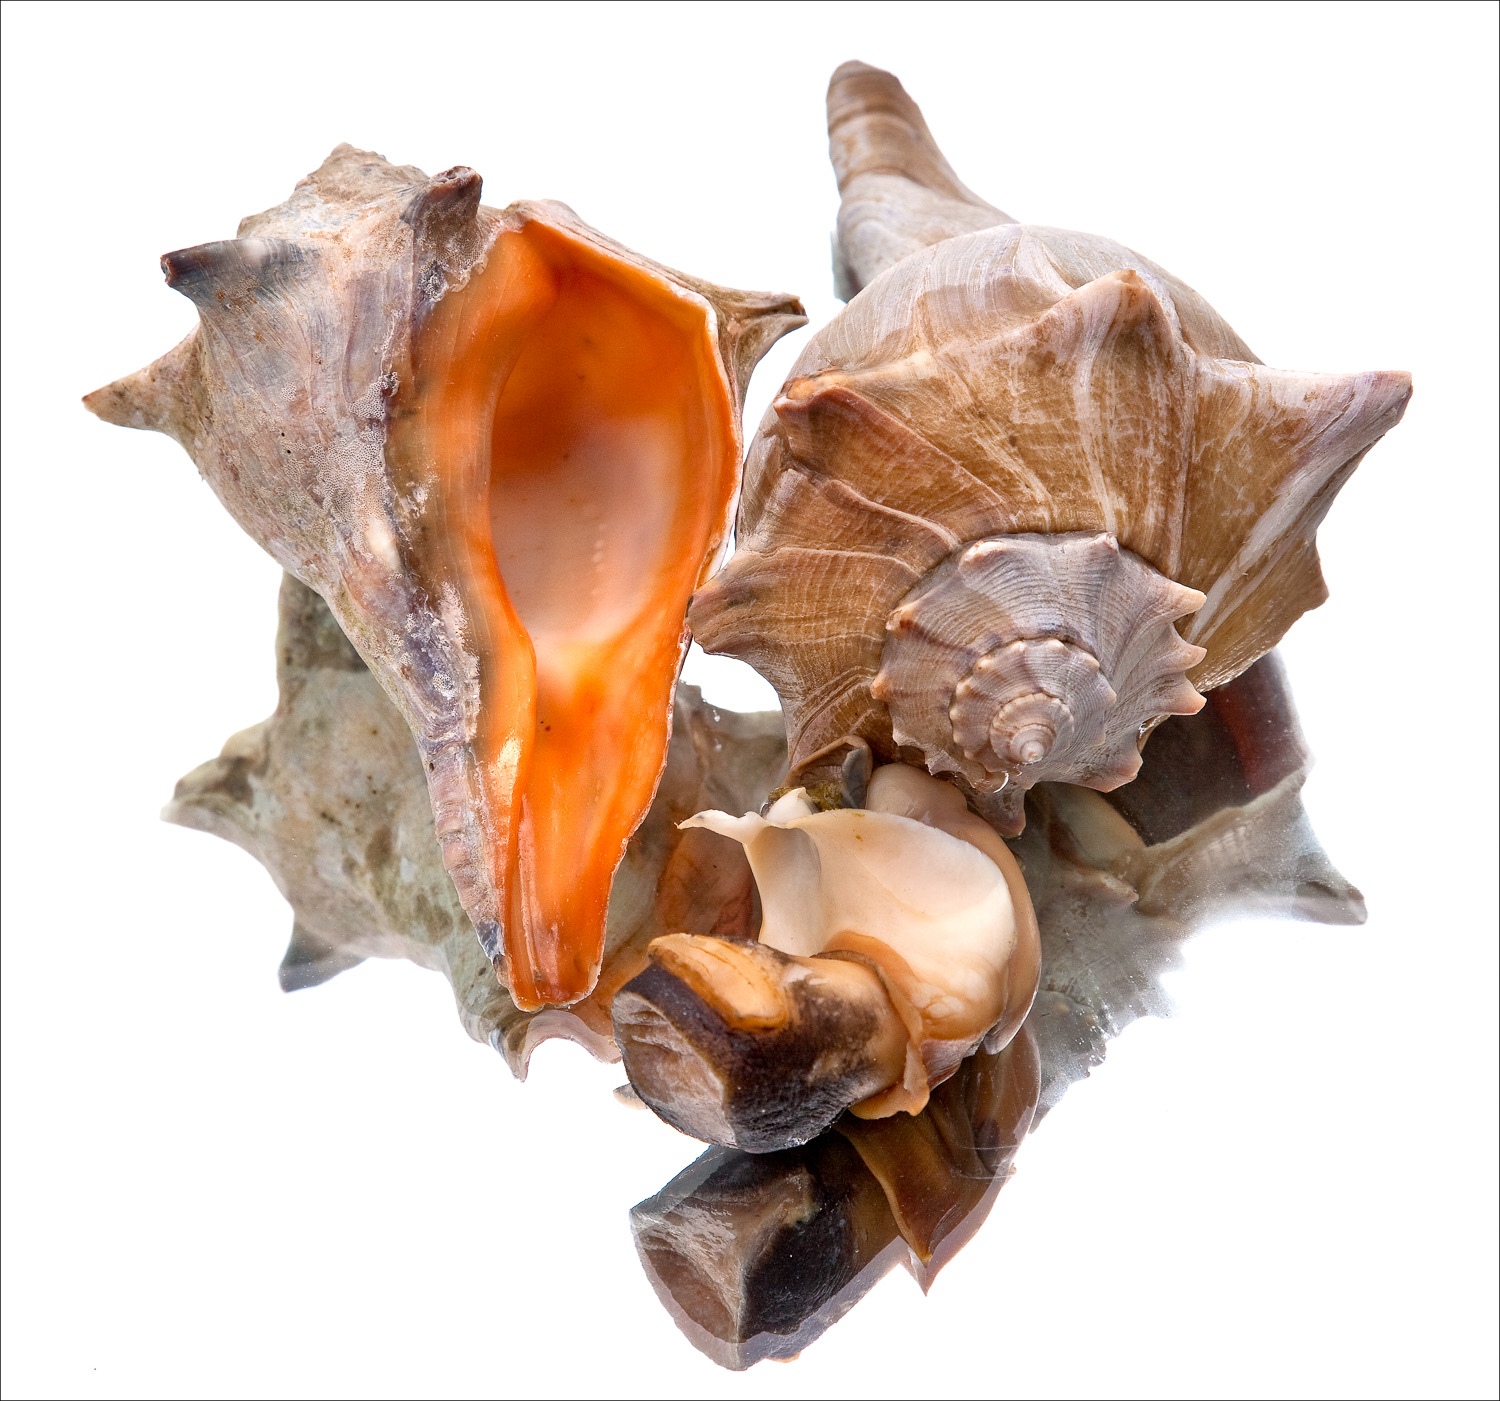 A living Whelk and another that is cooked , resting on a mirror.